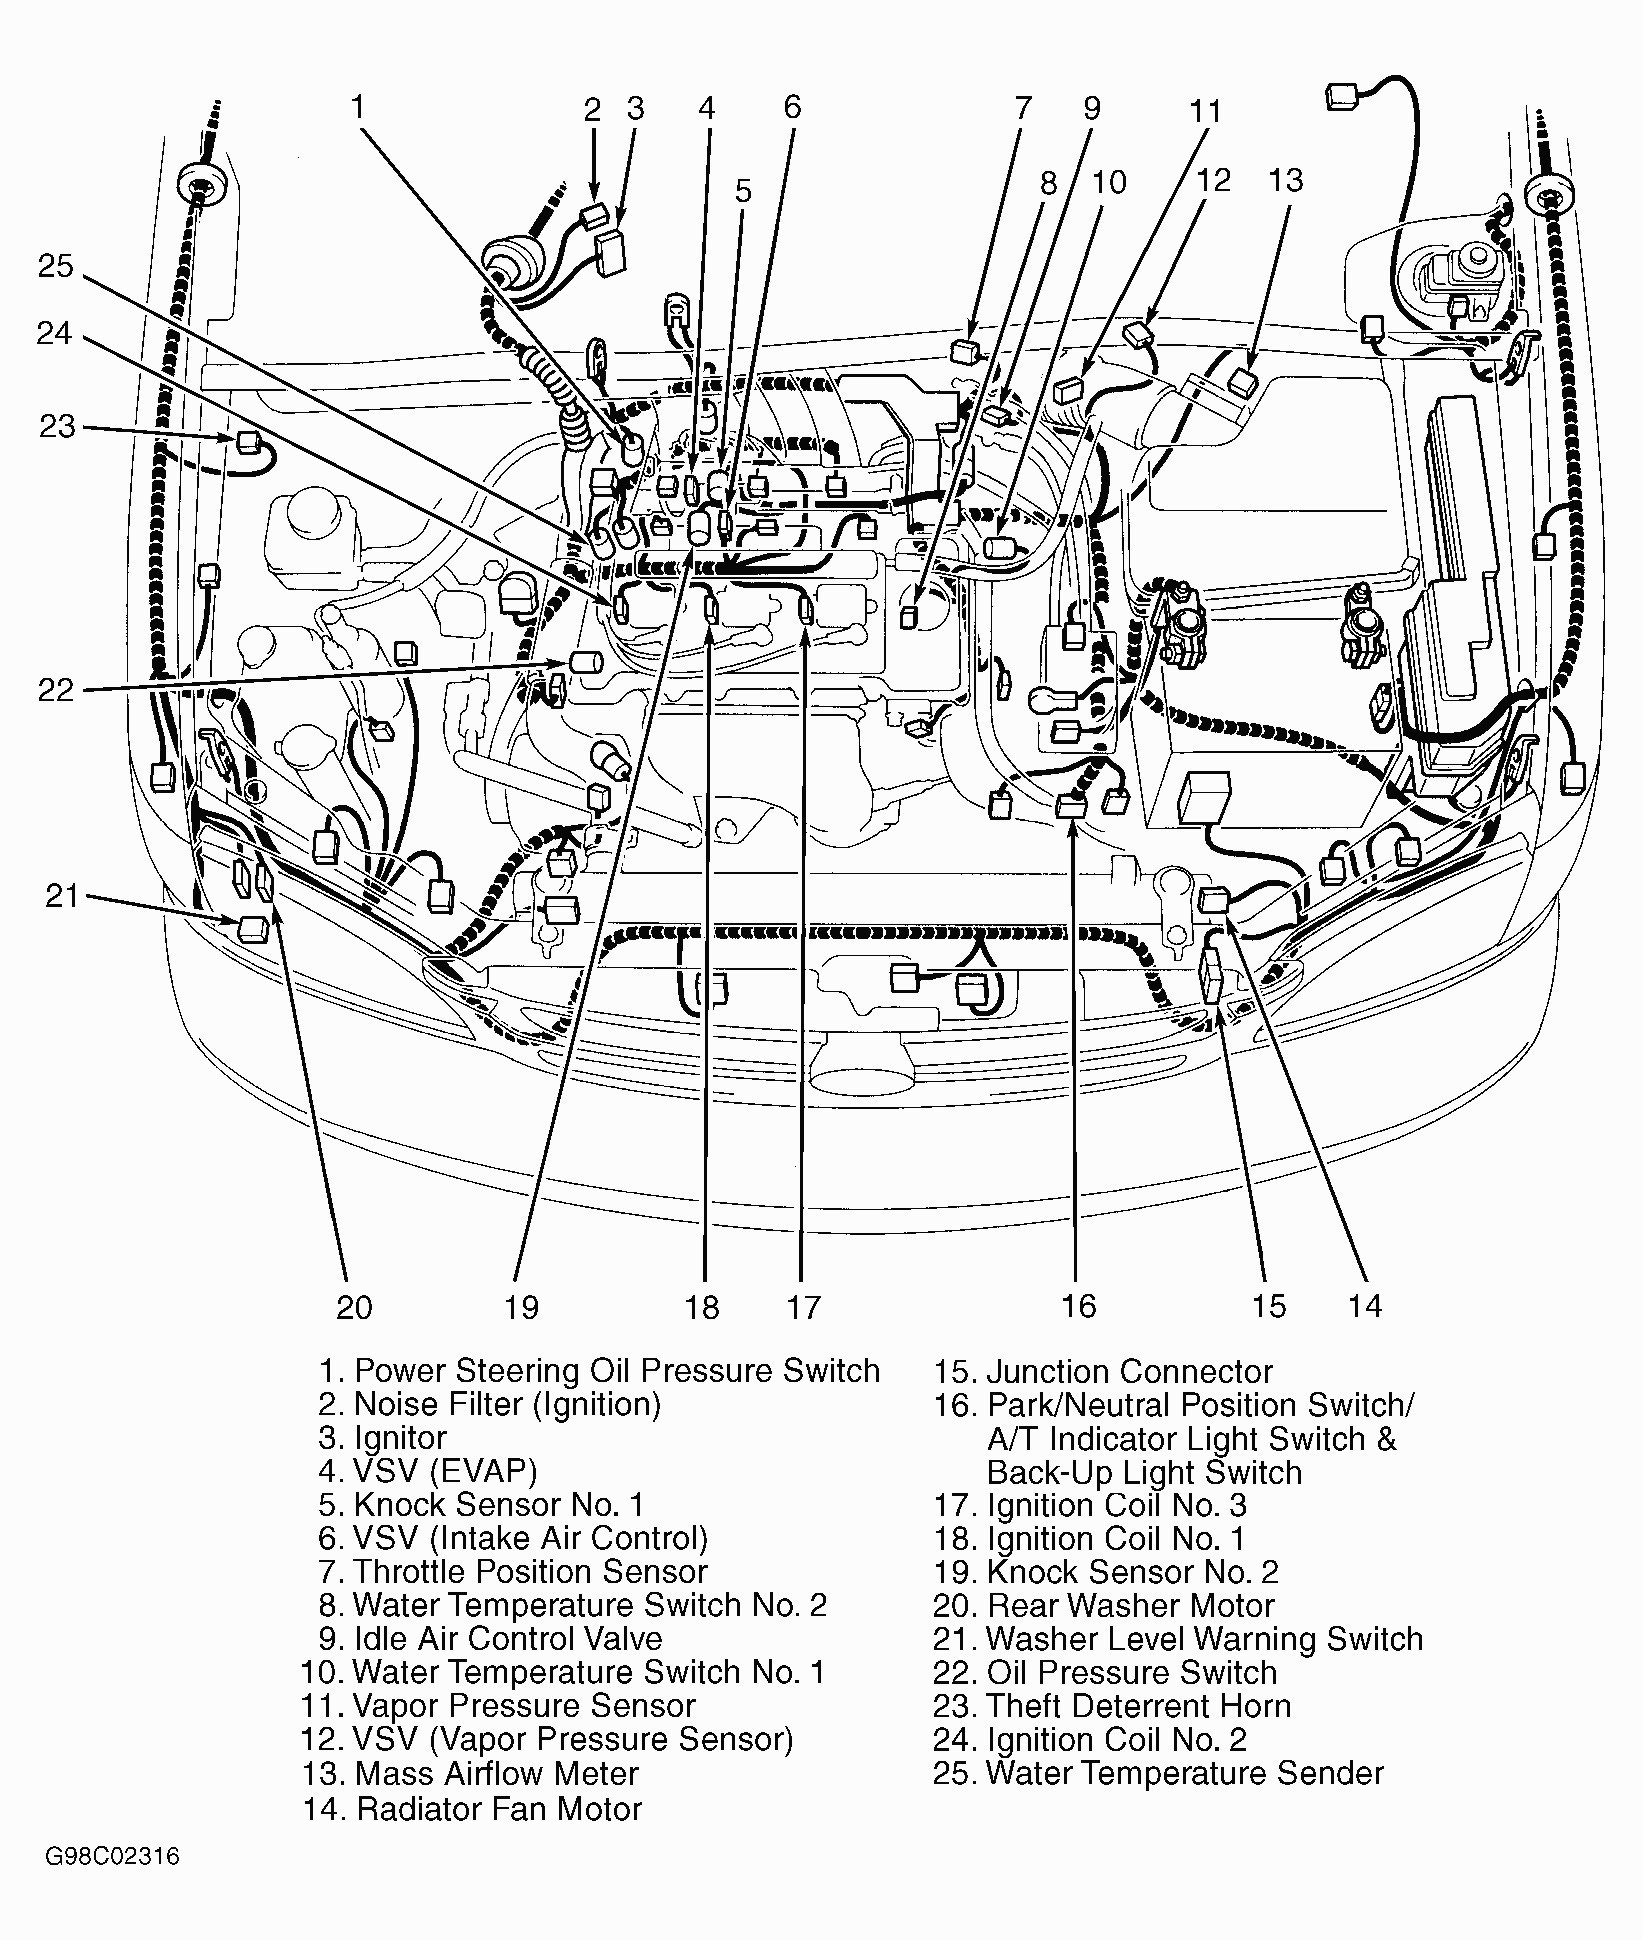 2004 toyota tacoma parts diagram 2001 toyota rav4 brake